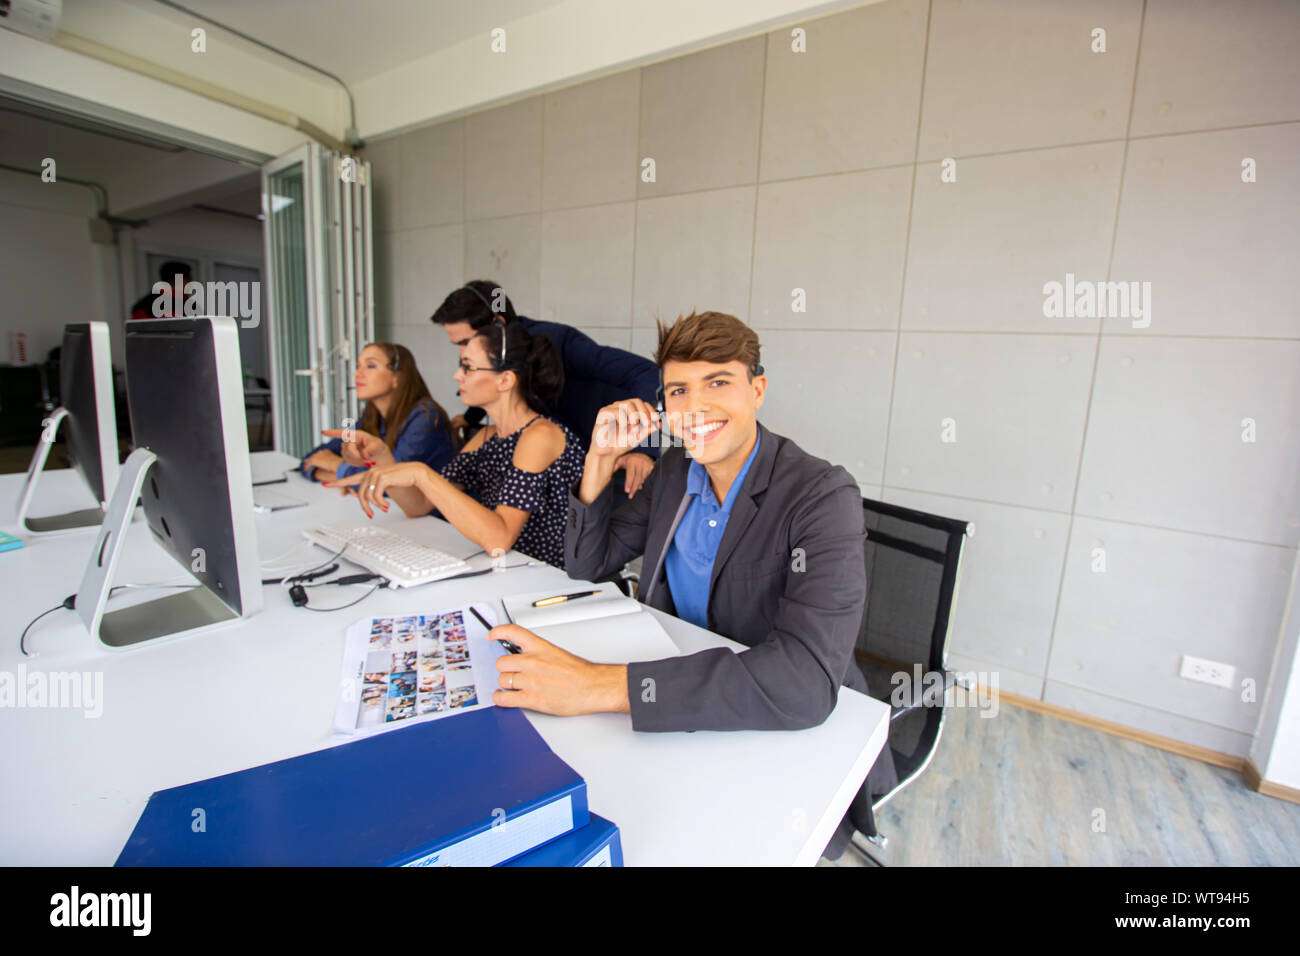 Technical support operator with headset working at laptop and computer, Business people talking on telephone with headset at office for customer help Stock Photo